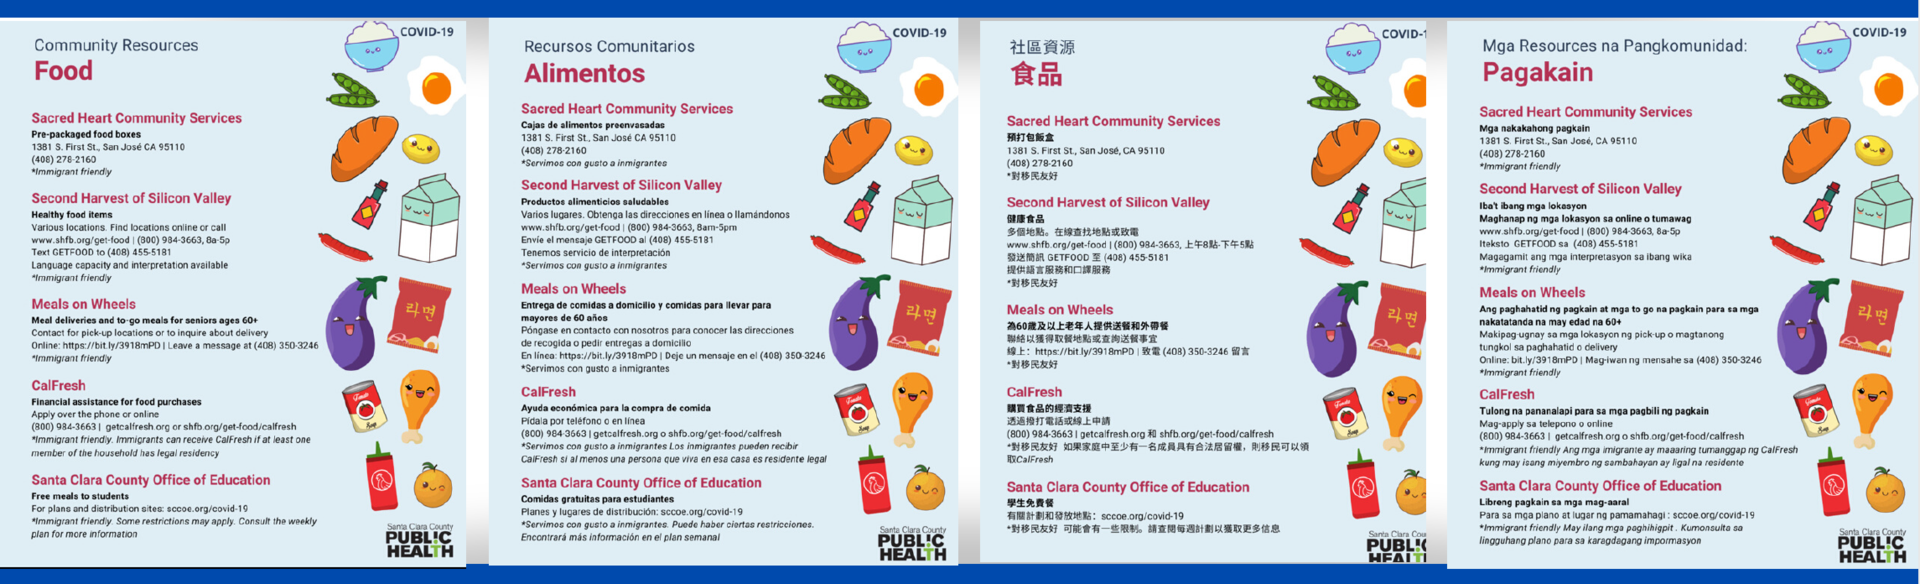 image of flyers showing food resources in santa clara county